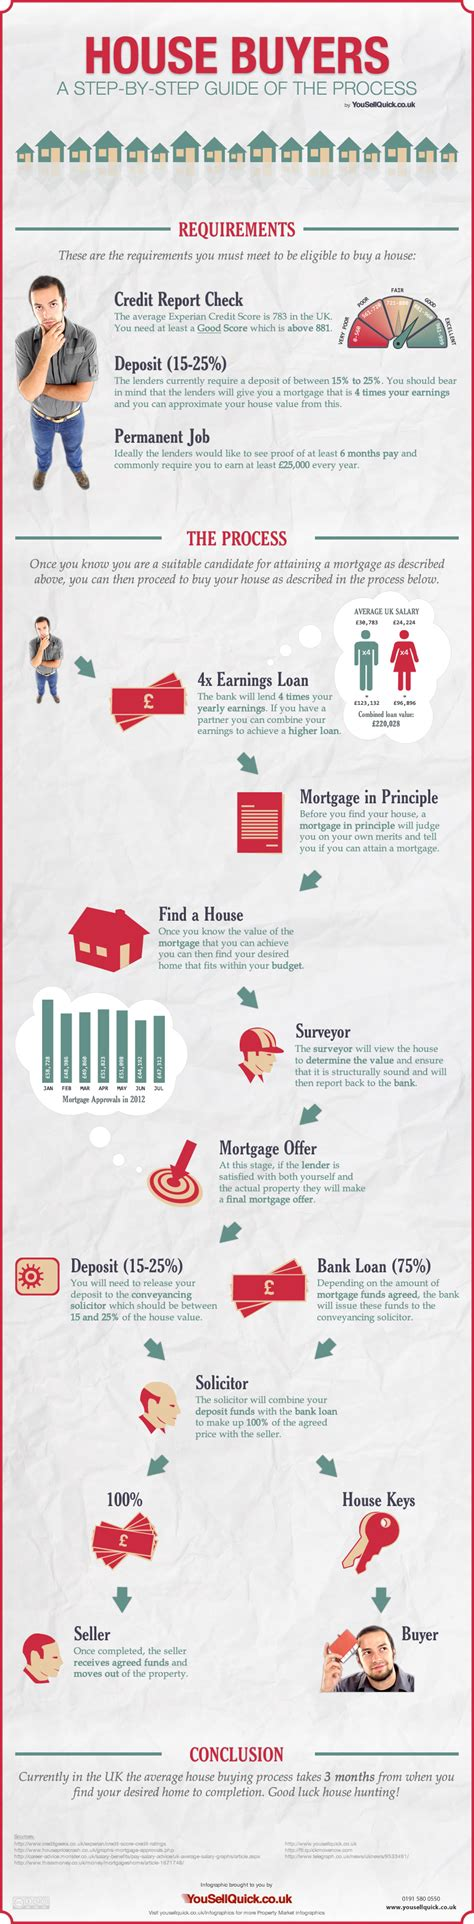 tips for house buying the process of buying a house in the uk infographic